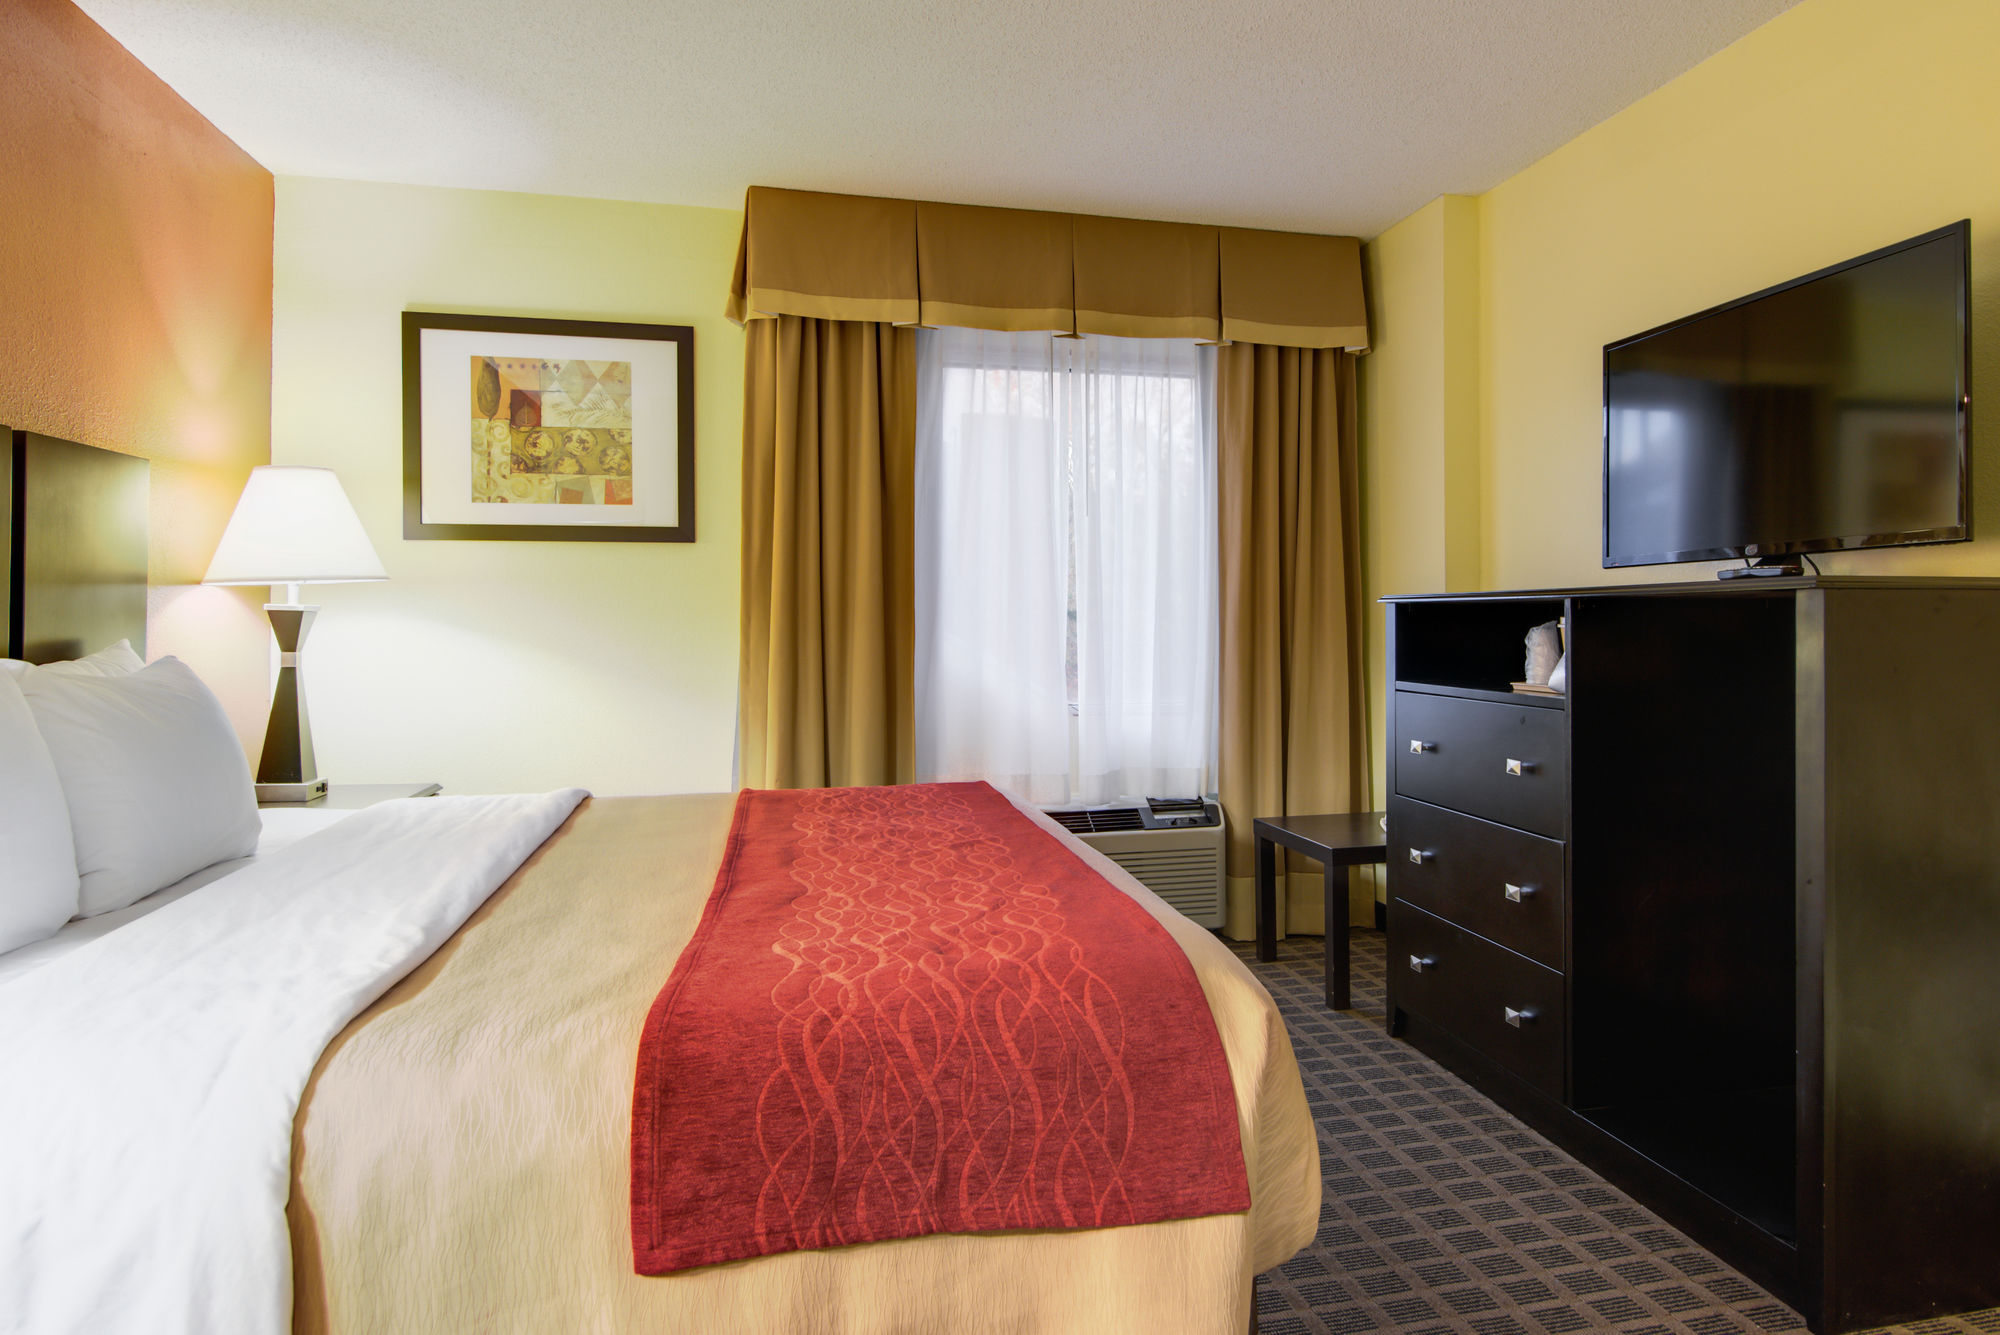 Comfort Inn & Suites in Macon, GA